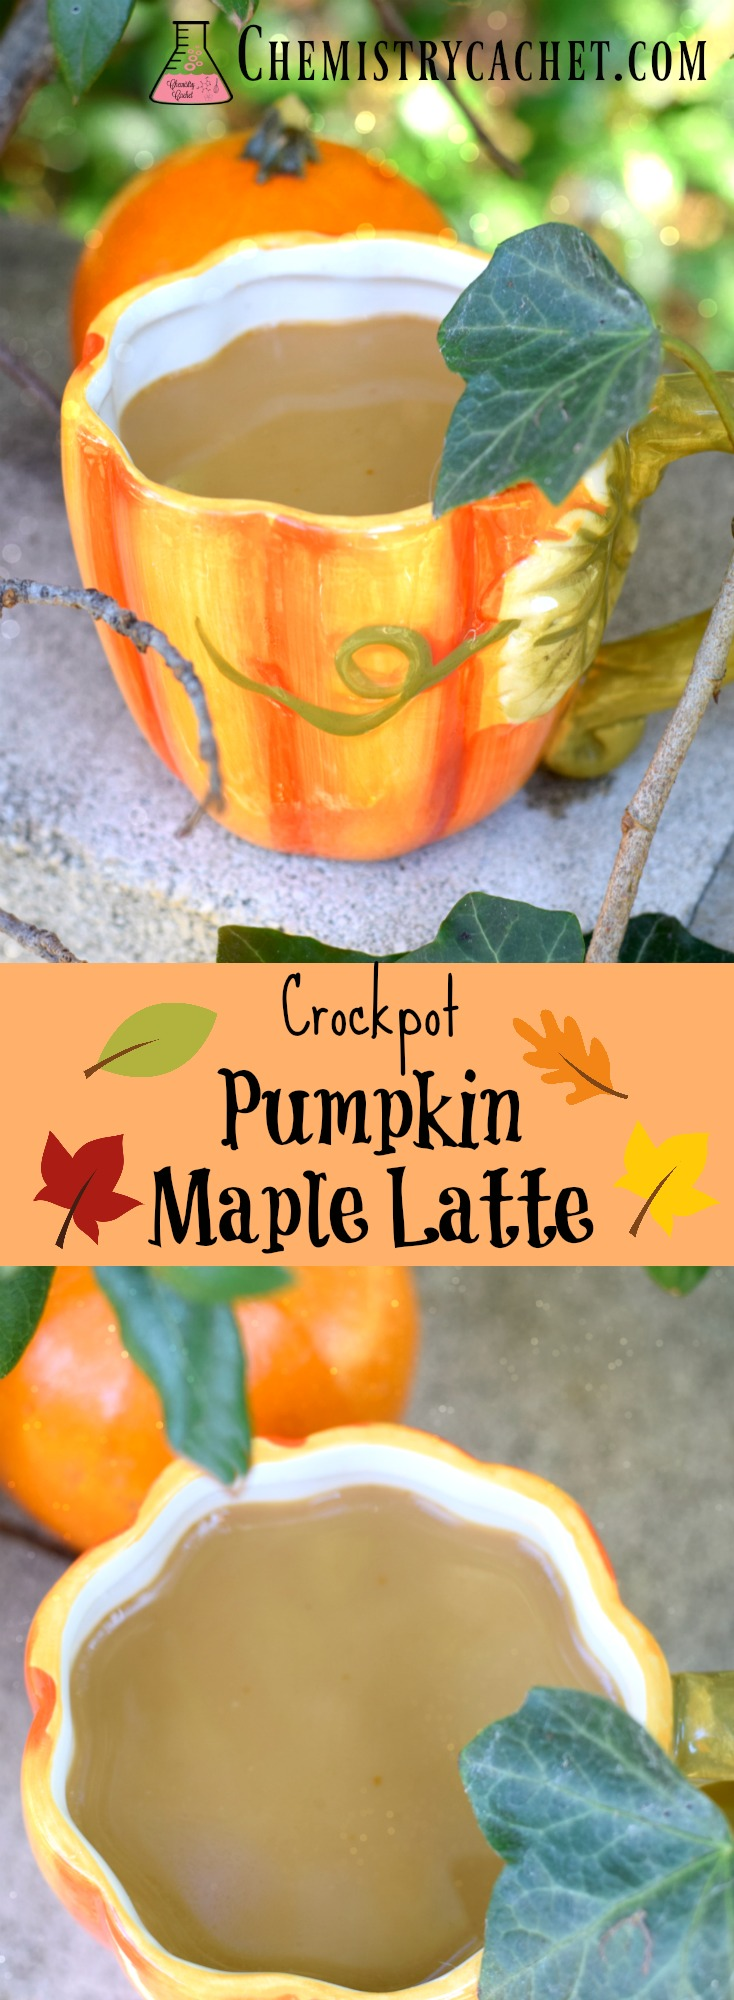 Easy Crockpot Pumpkin Maple Latte Recipe. Crockpot pumpkin lattes full of delicious maple flavor, great for a party! Full of delicious ingredients with dairy- free options chemistrycachet.com